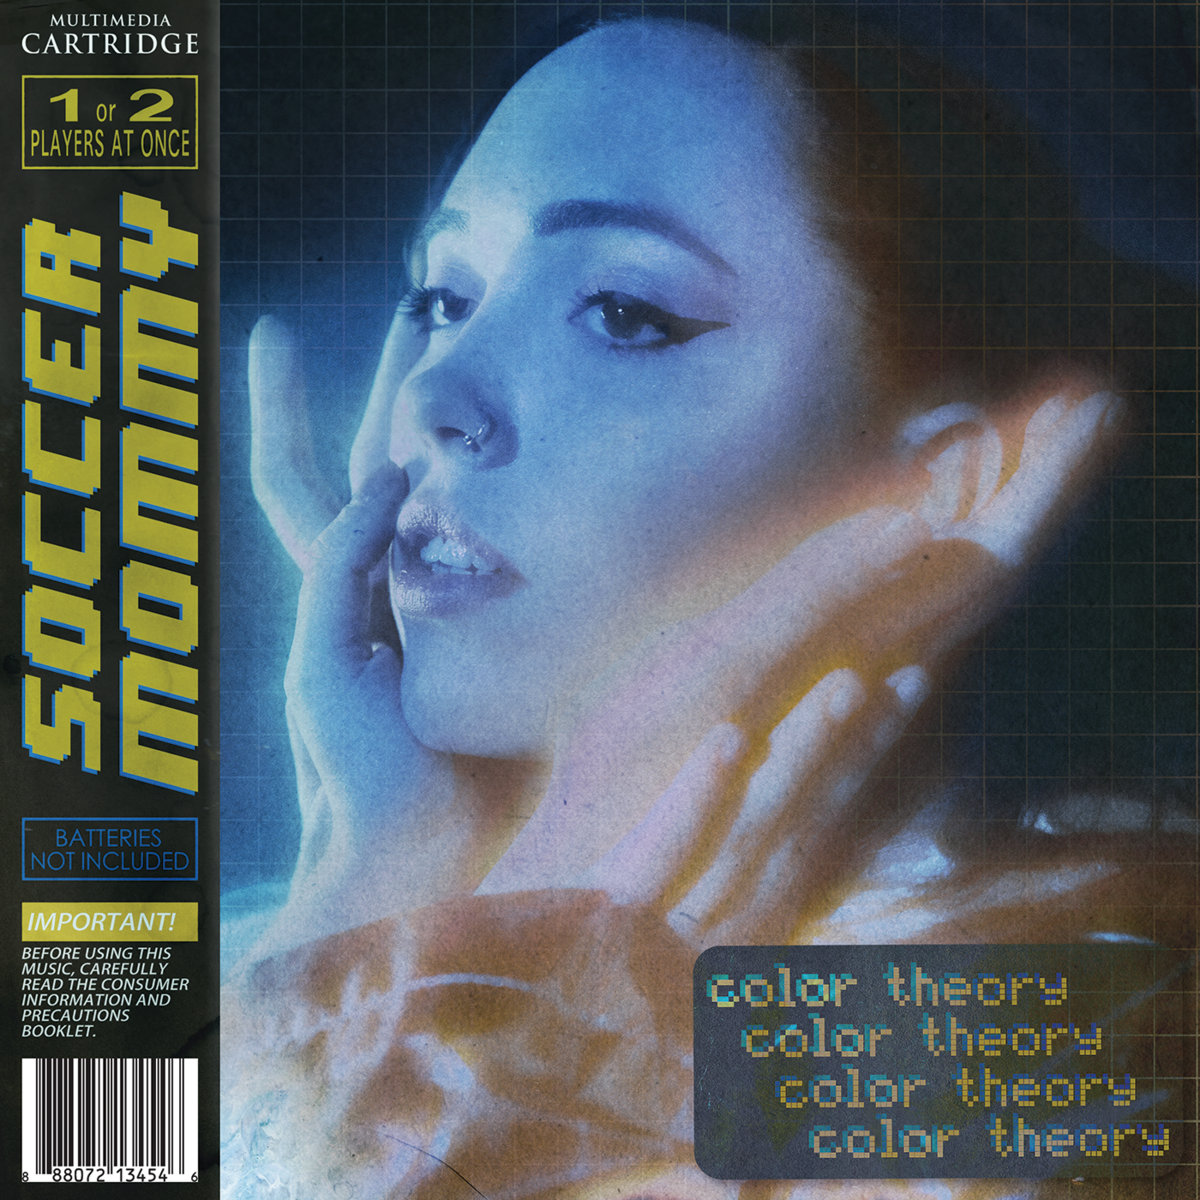 color theory | Soccer Mommy | soccer mommy